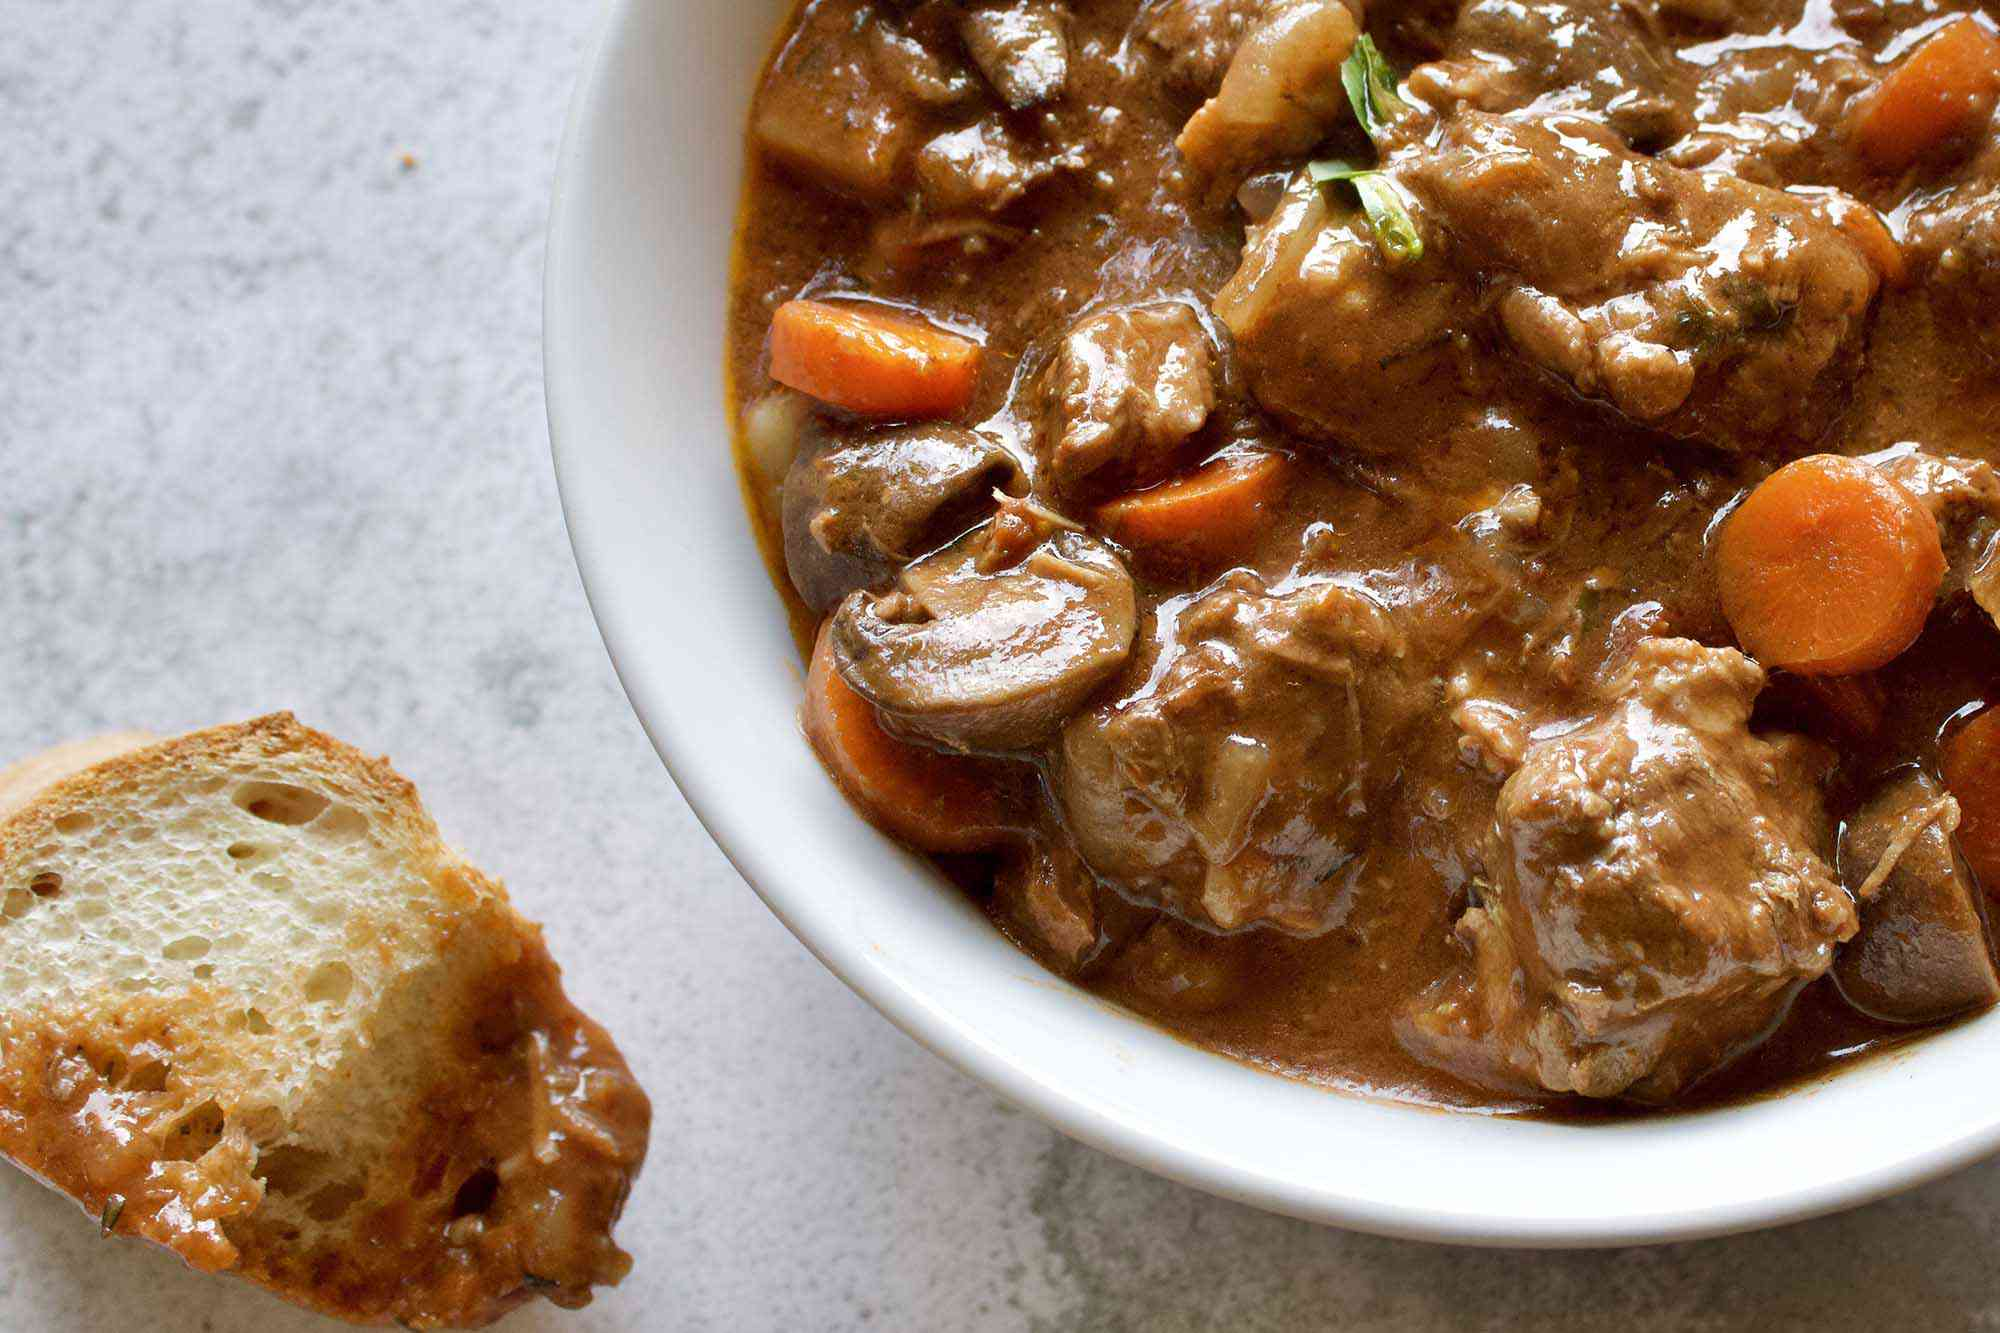 A slice of bread dipped into a bowl of Slow Cooker Beef Stew with Mushrooms, Onions and Carrots and set to the side.